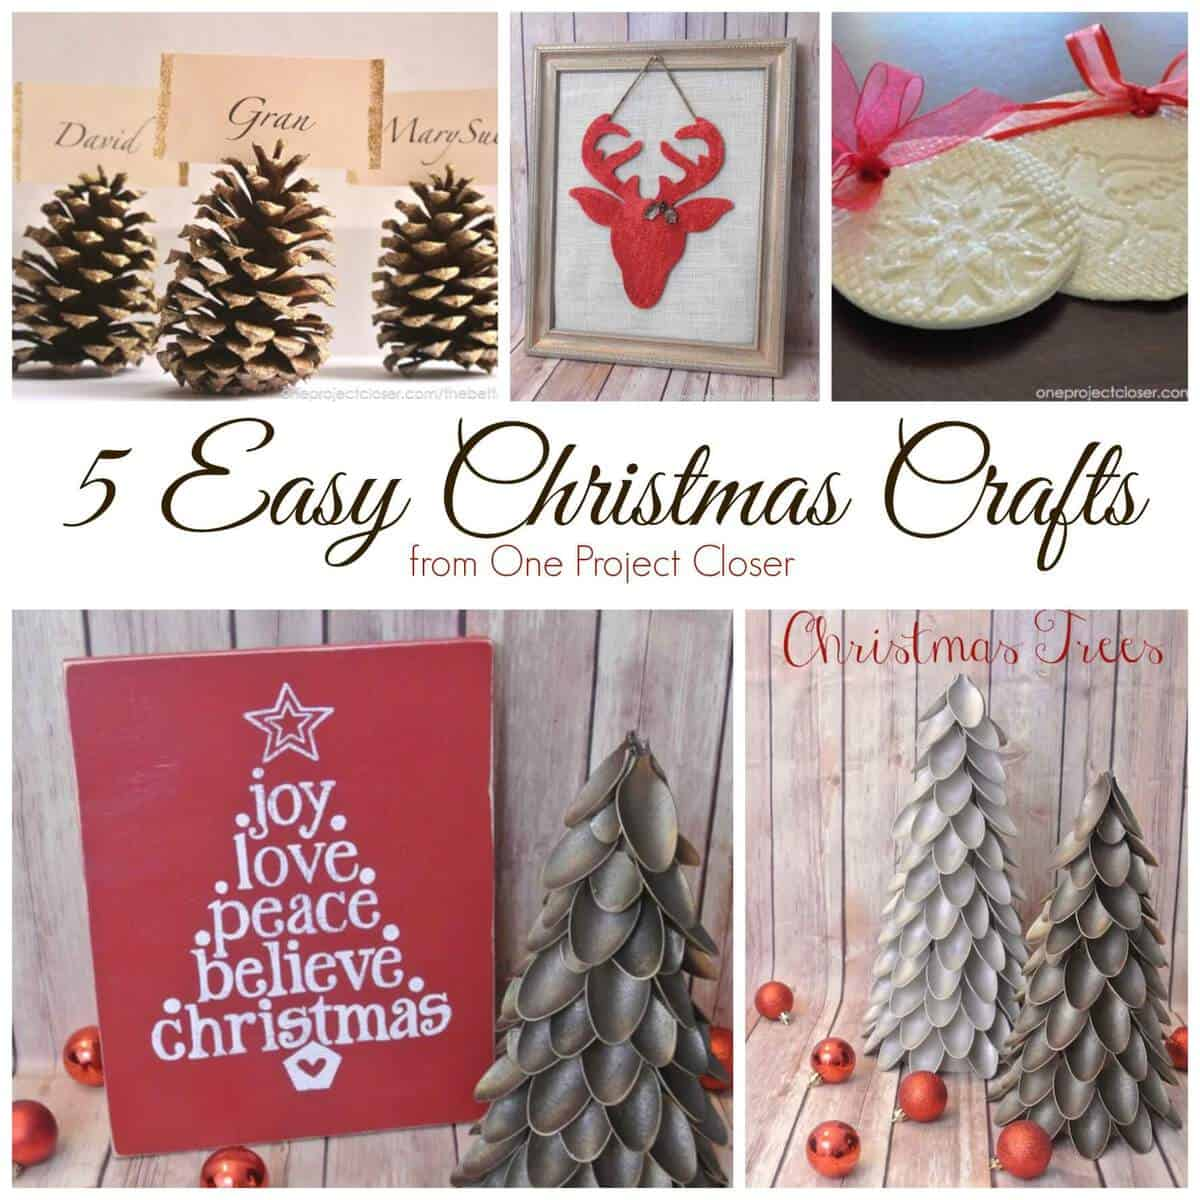 Guest Post: 5 Easy Christmas Crafts